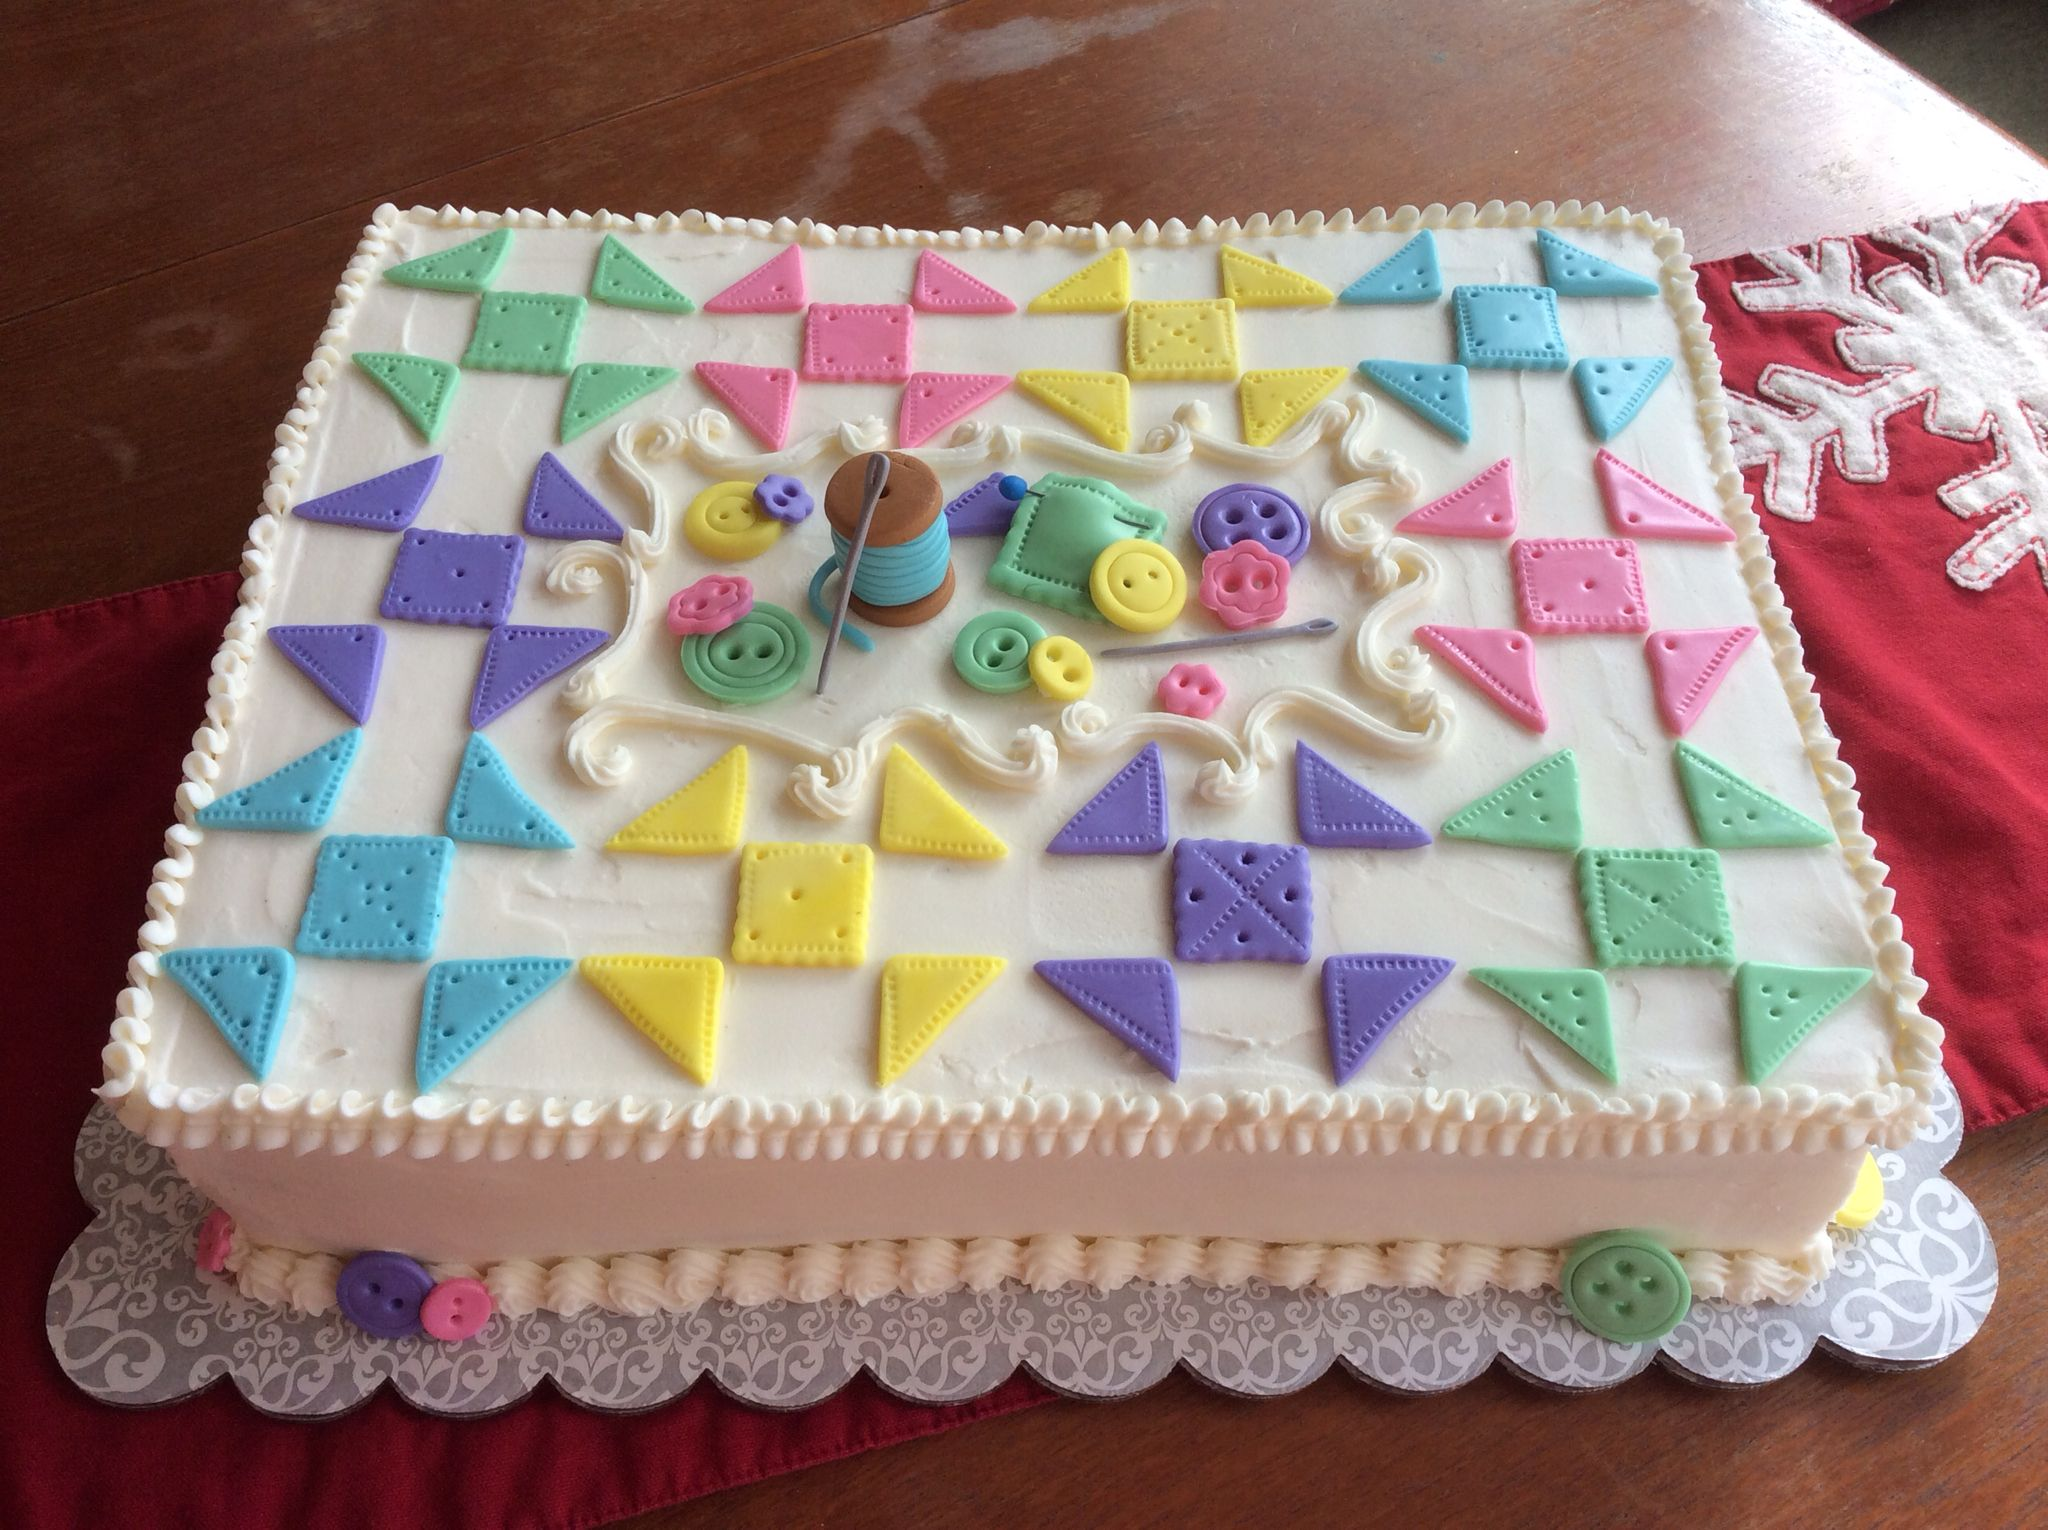 Quiltthemed cake for quilting guild Christmas Party. Half